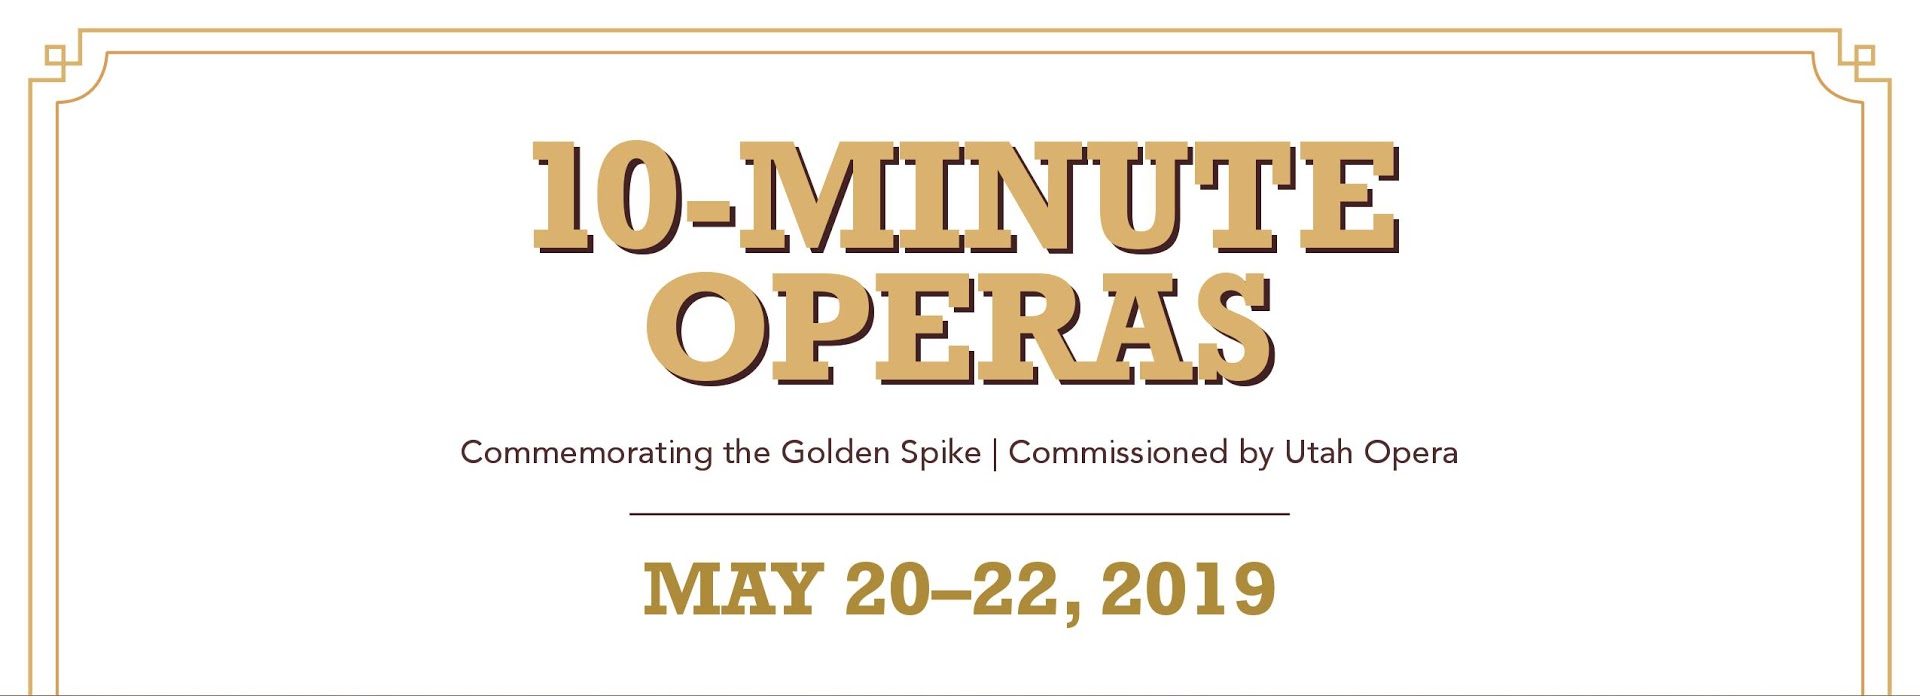 10-Minute Operas at Ogden Union Station - May 21st